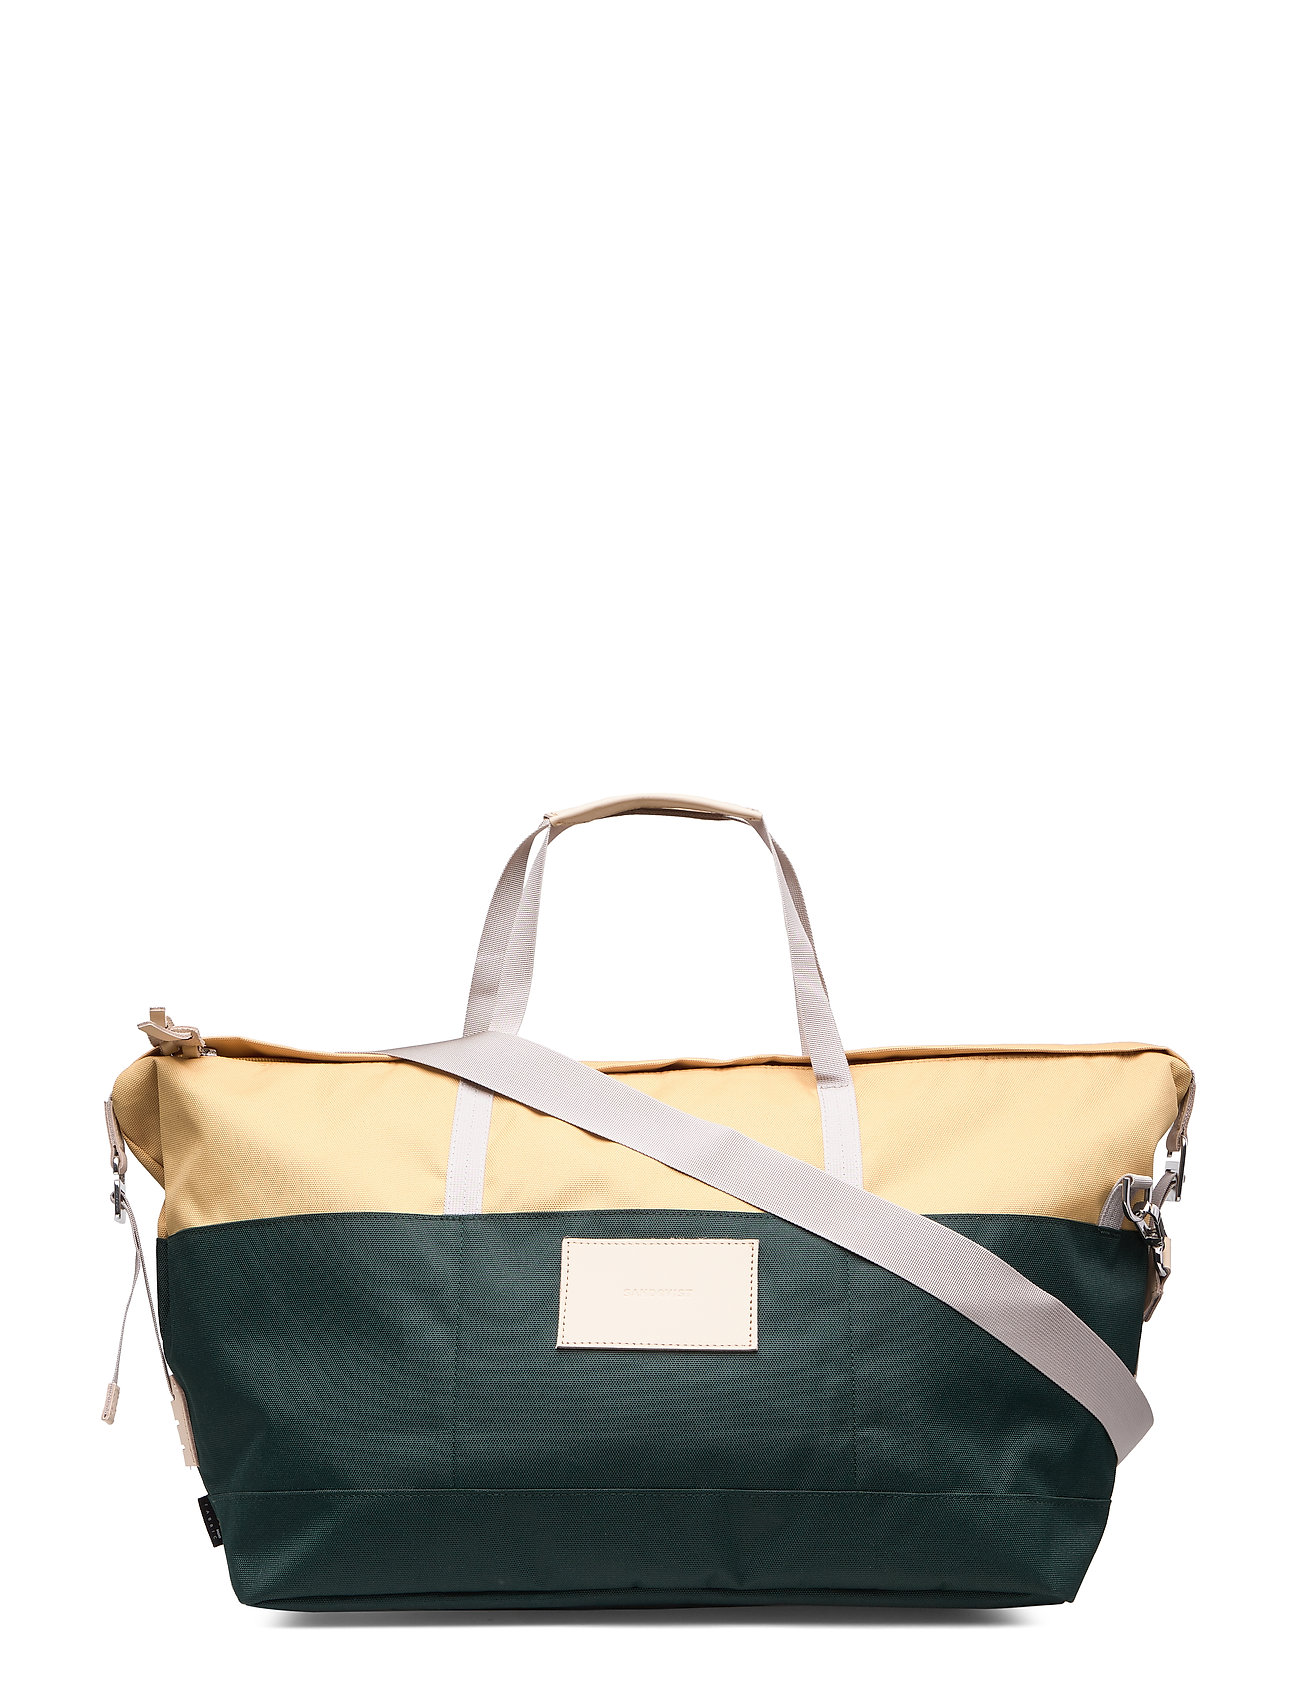 SANDQVIST MILTON - MULTI HONEY YELLOW / DARK GREEN  WITH NATURAL LEATHER